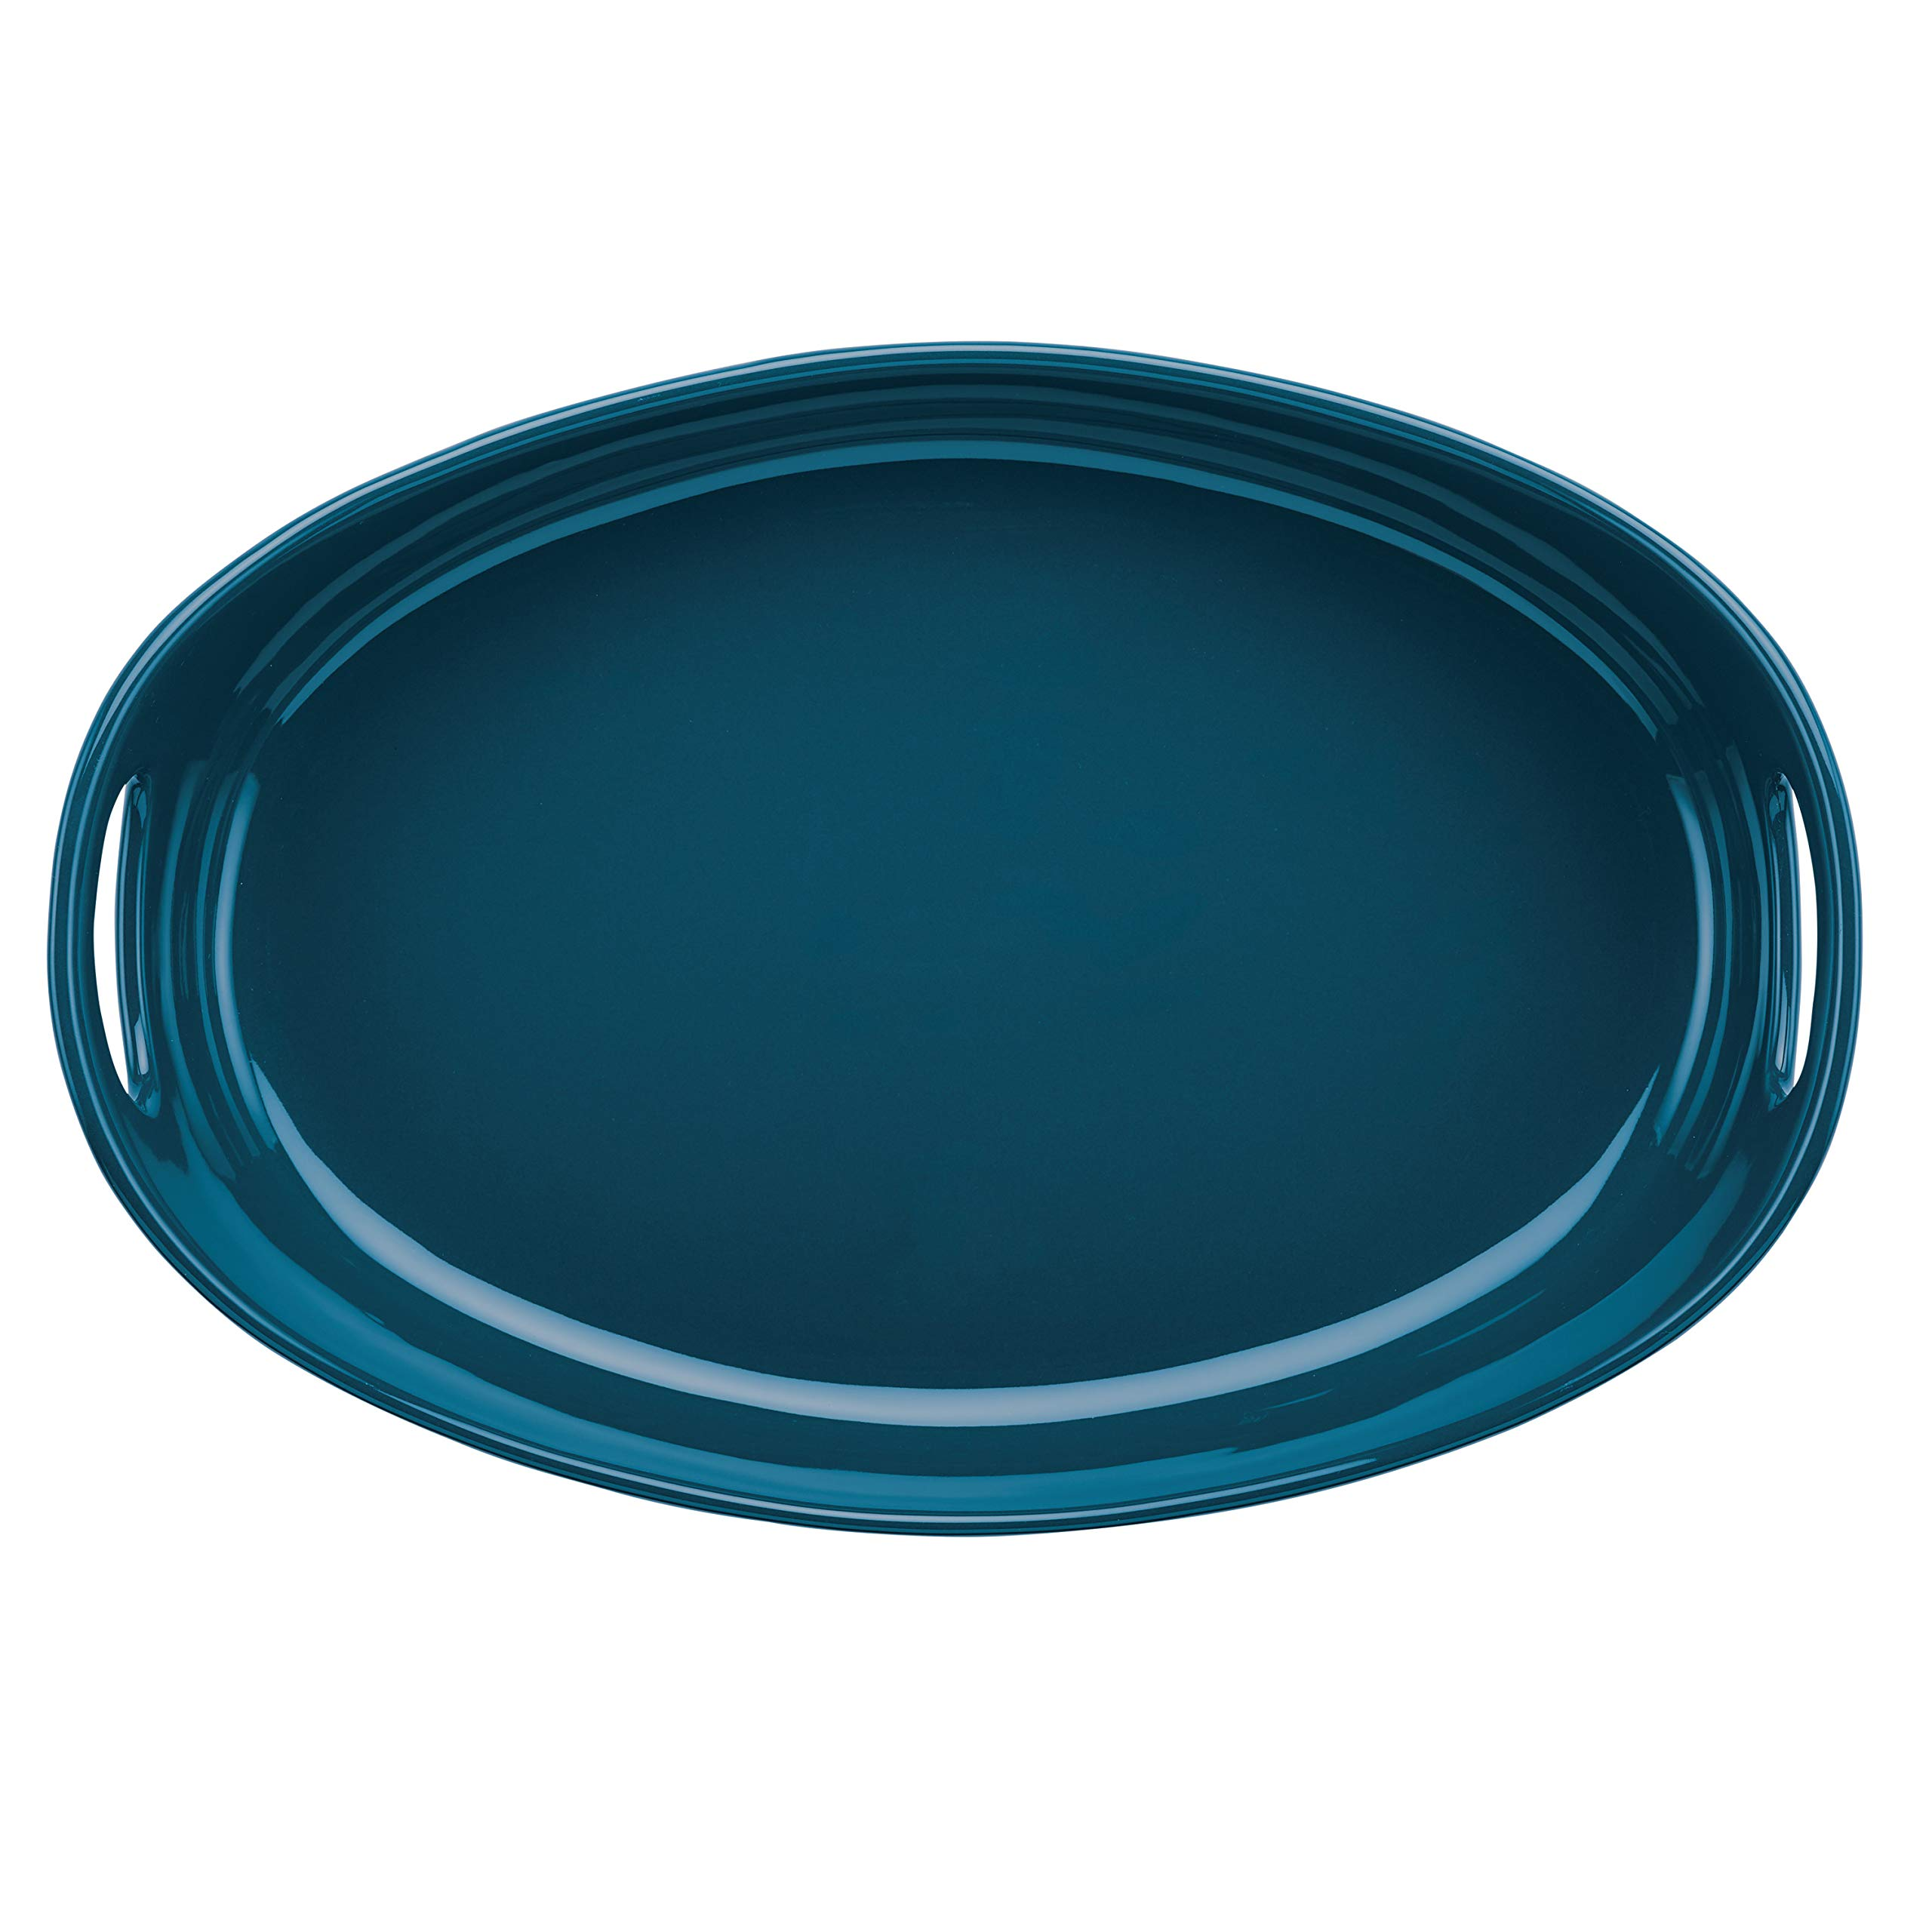 Rachael Ray Ceramics Bubble and Brown Oval Baker Set, 2-Piece, Marine Blue by Rachael Ray (Image #2)